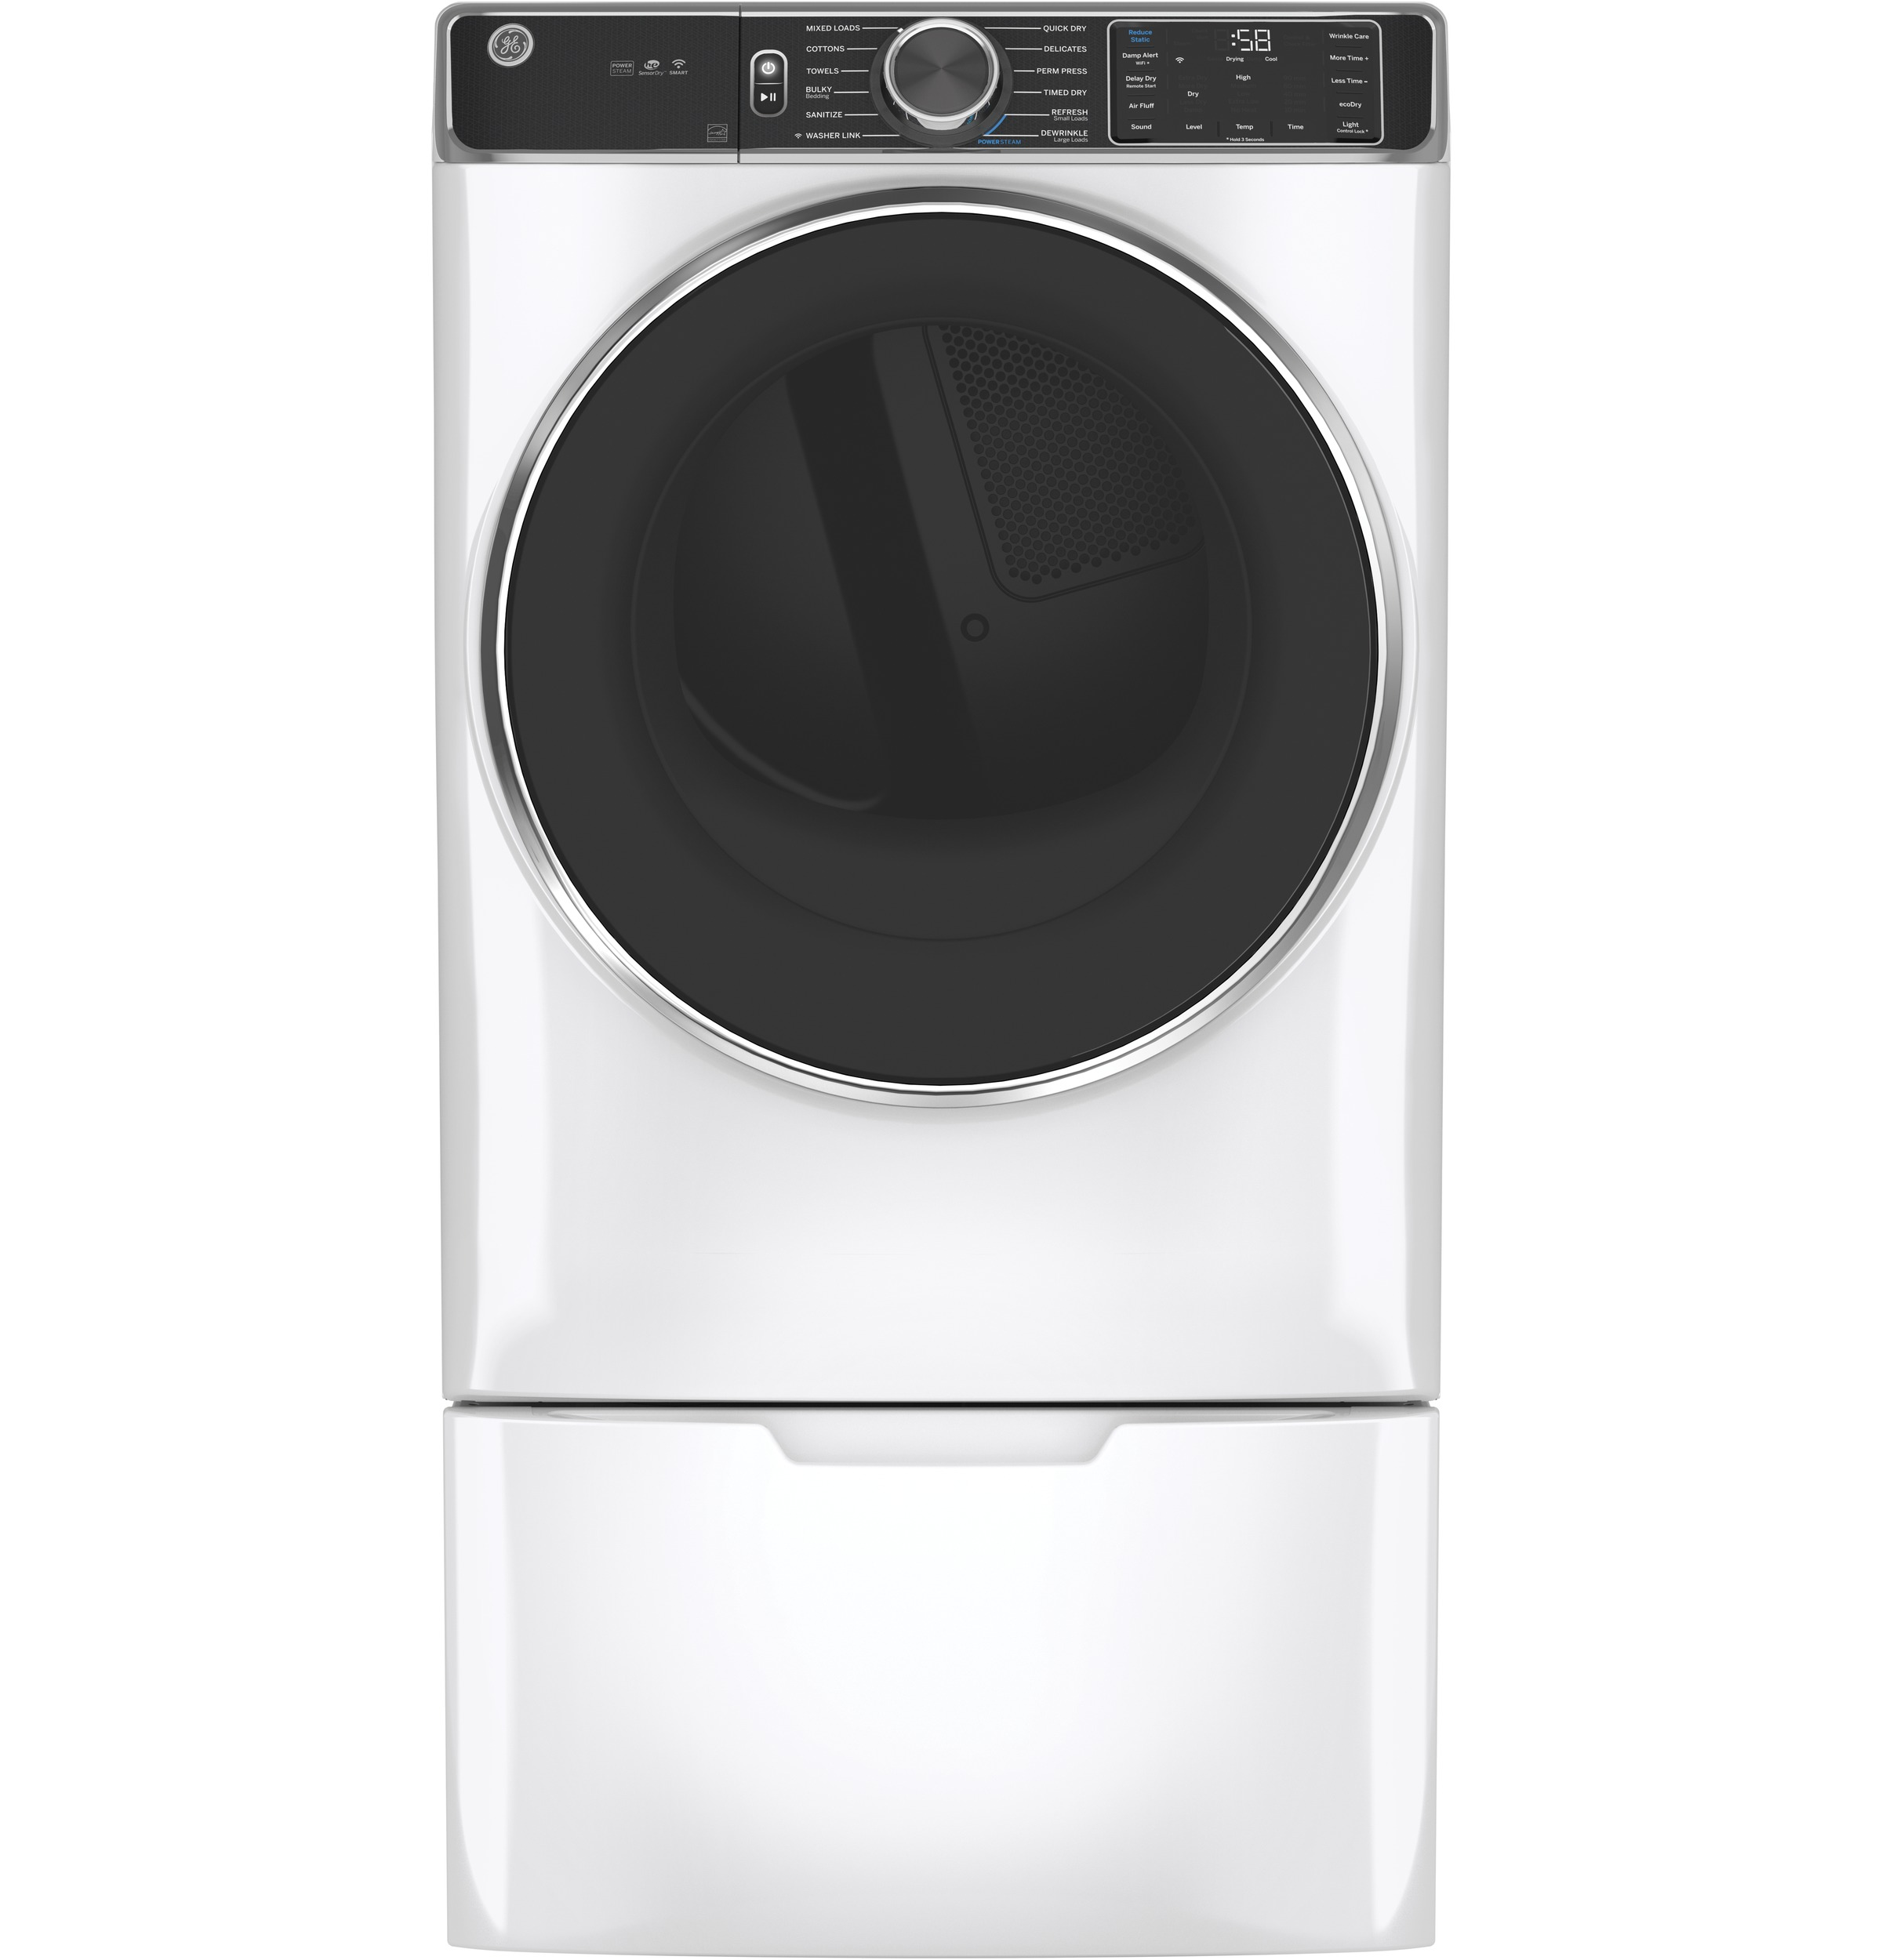 Model: GFD85GSSNWW | GE GE® 7.8 cu. ft. Capacity Smart Front Load Gas Dryer with Steam and Sanitize Cycle